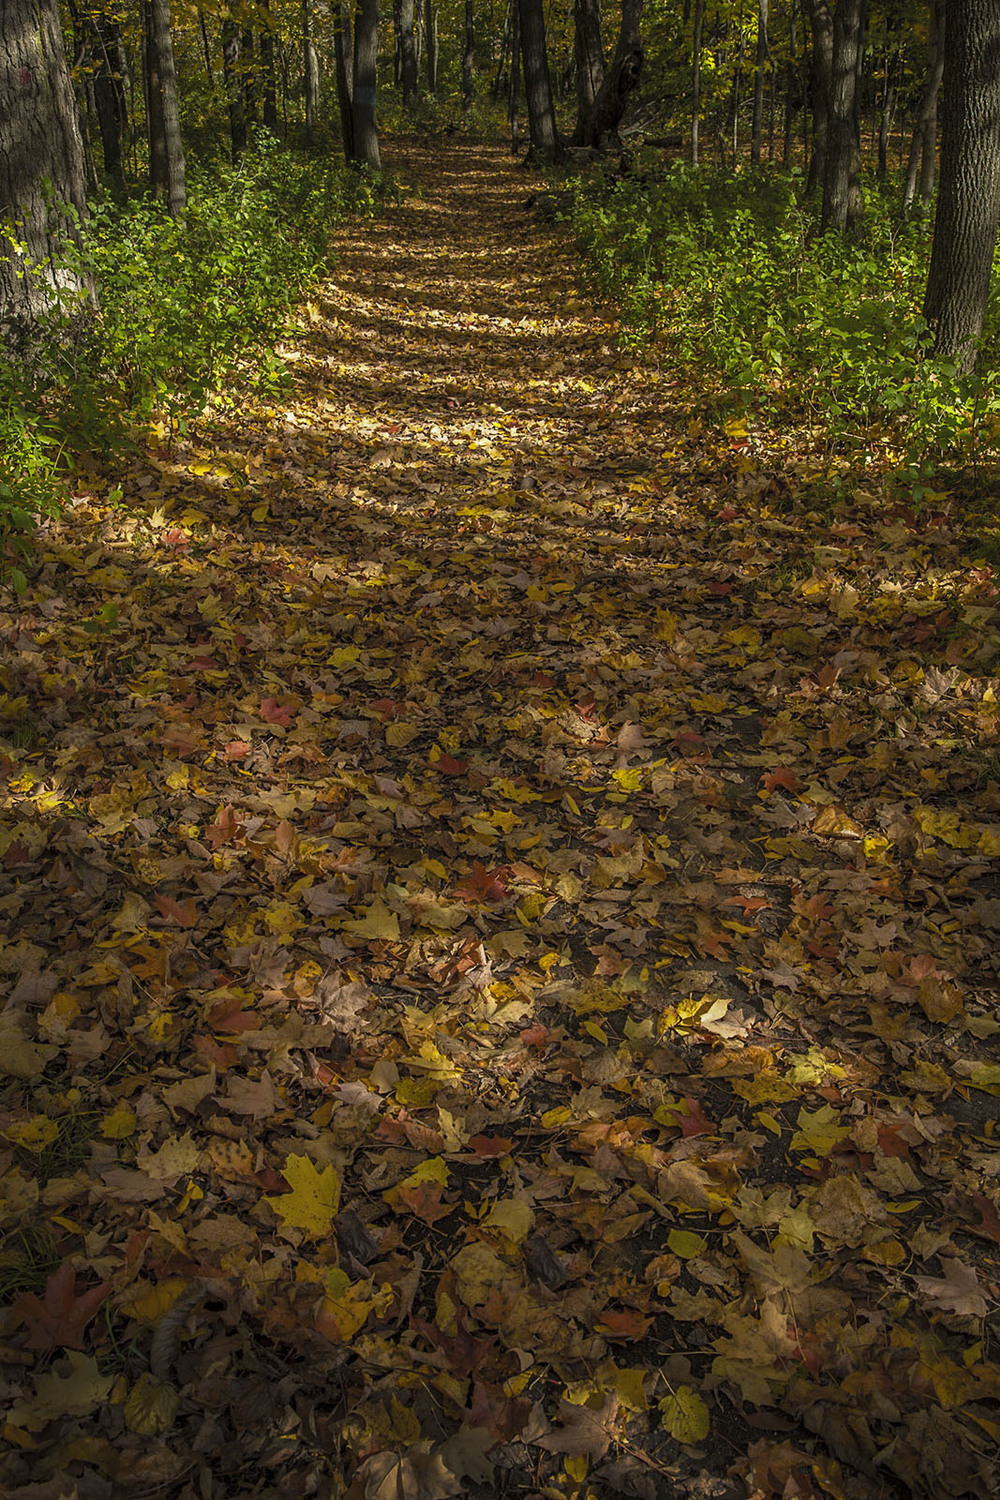 Trail of Fallen Leaves